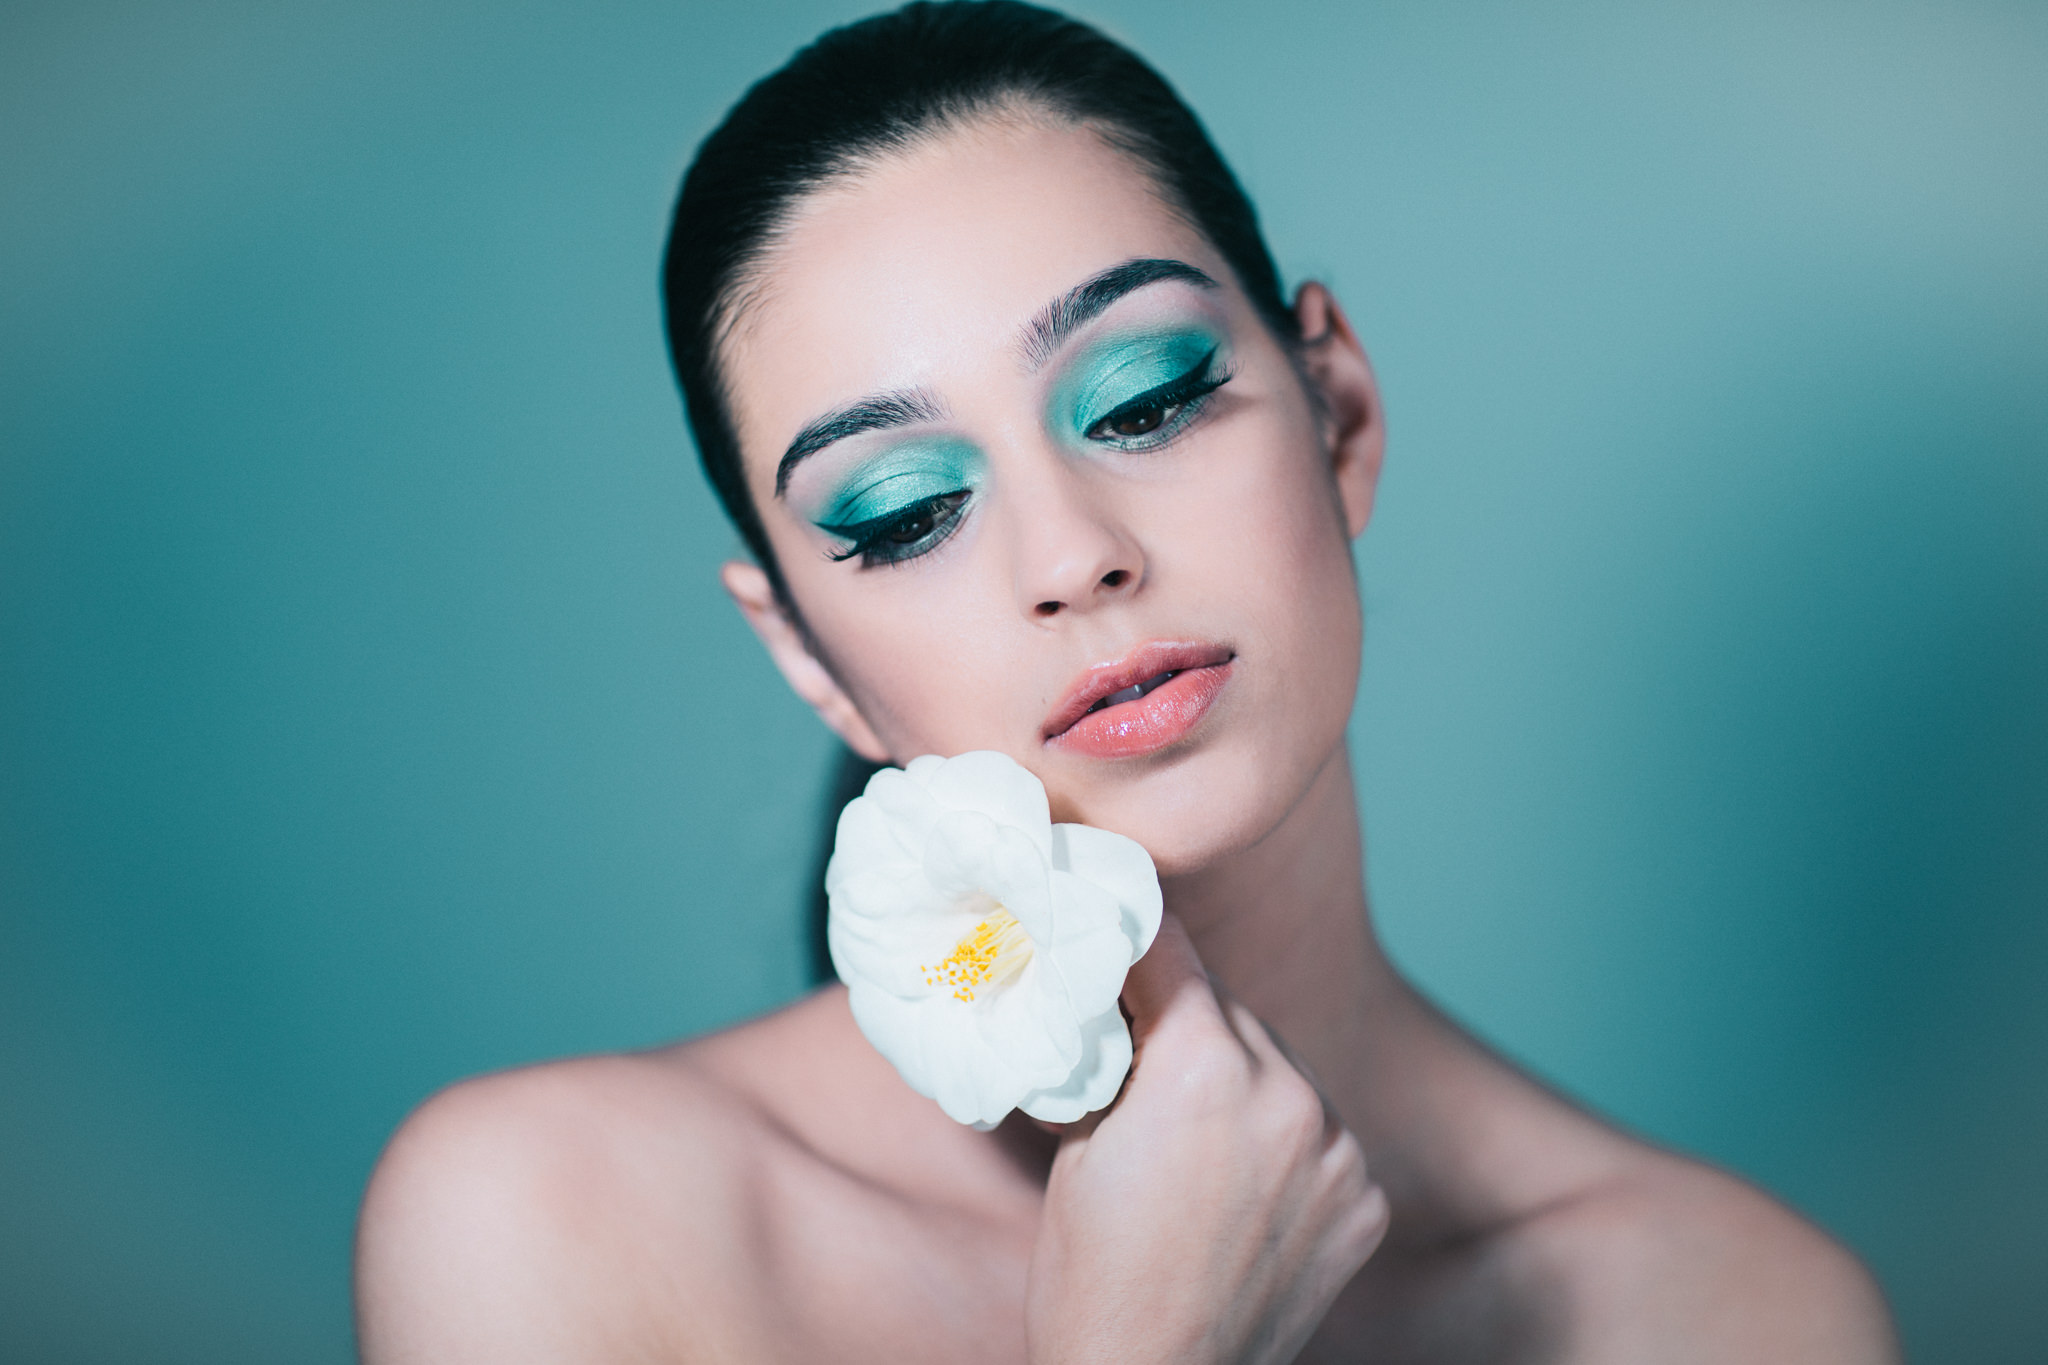 Beauty Photography in Melbourne 2018 - Spring flower inspired photoshoot in Melbourne photo studio